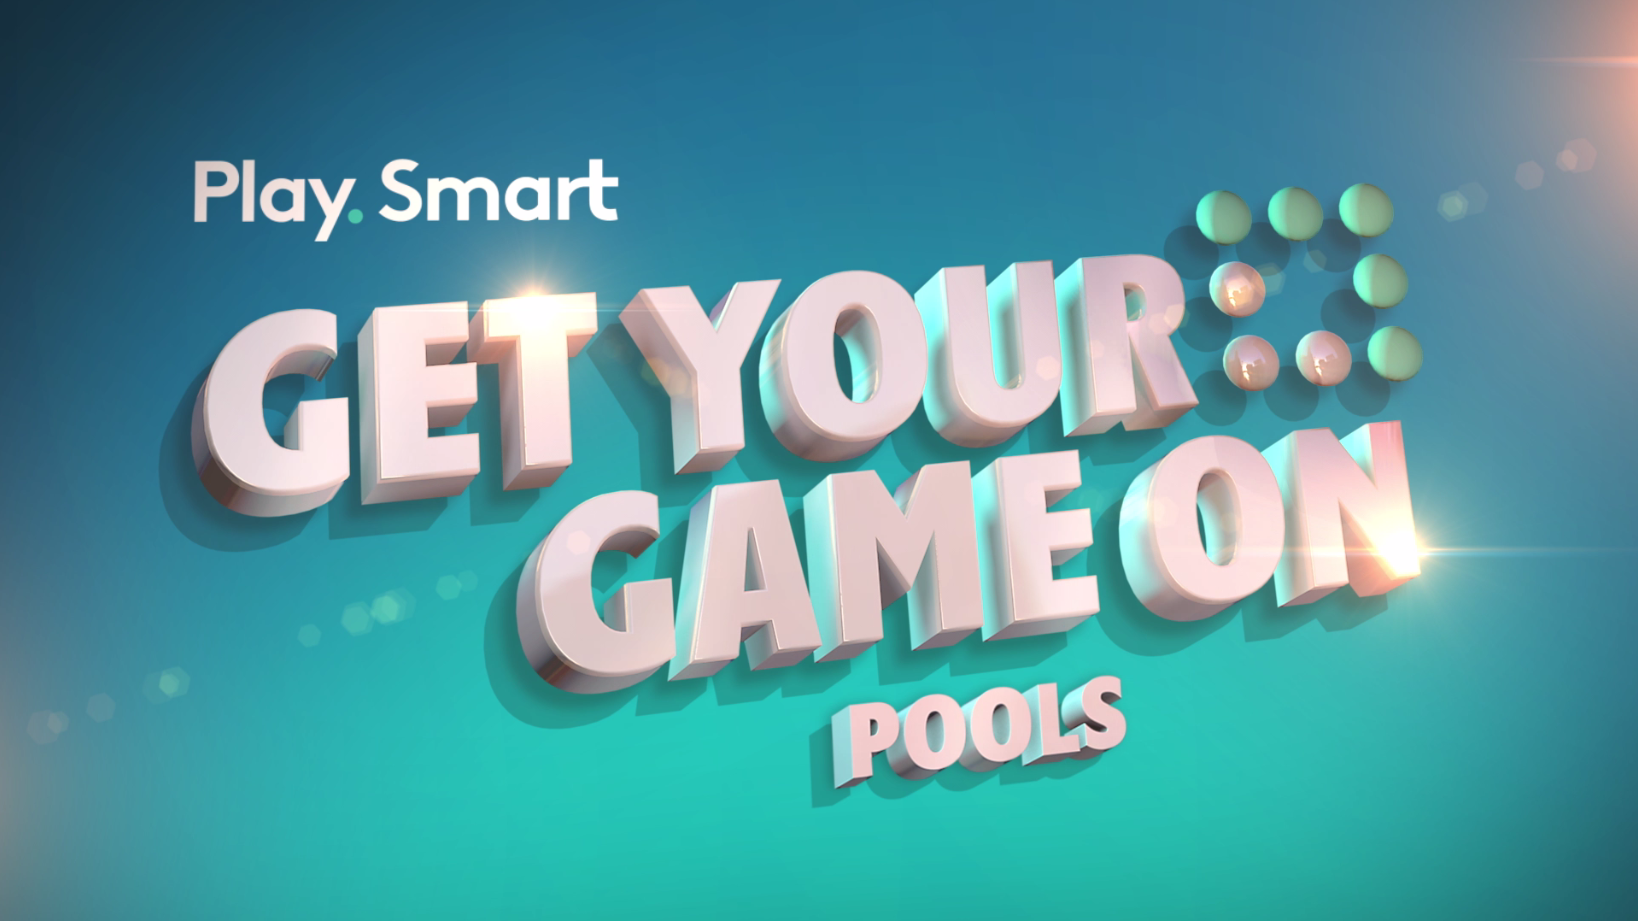 Get your game on POOLS